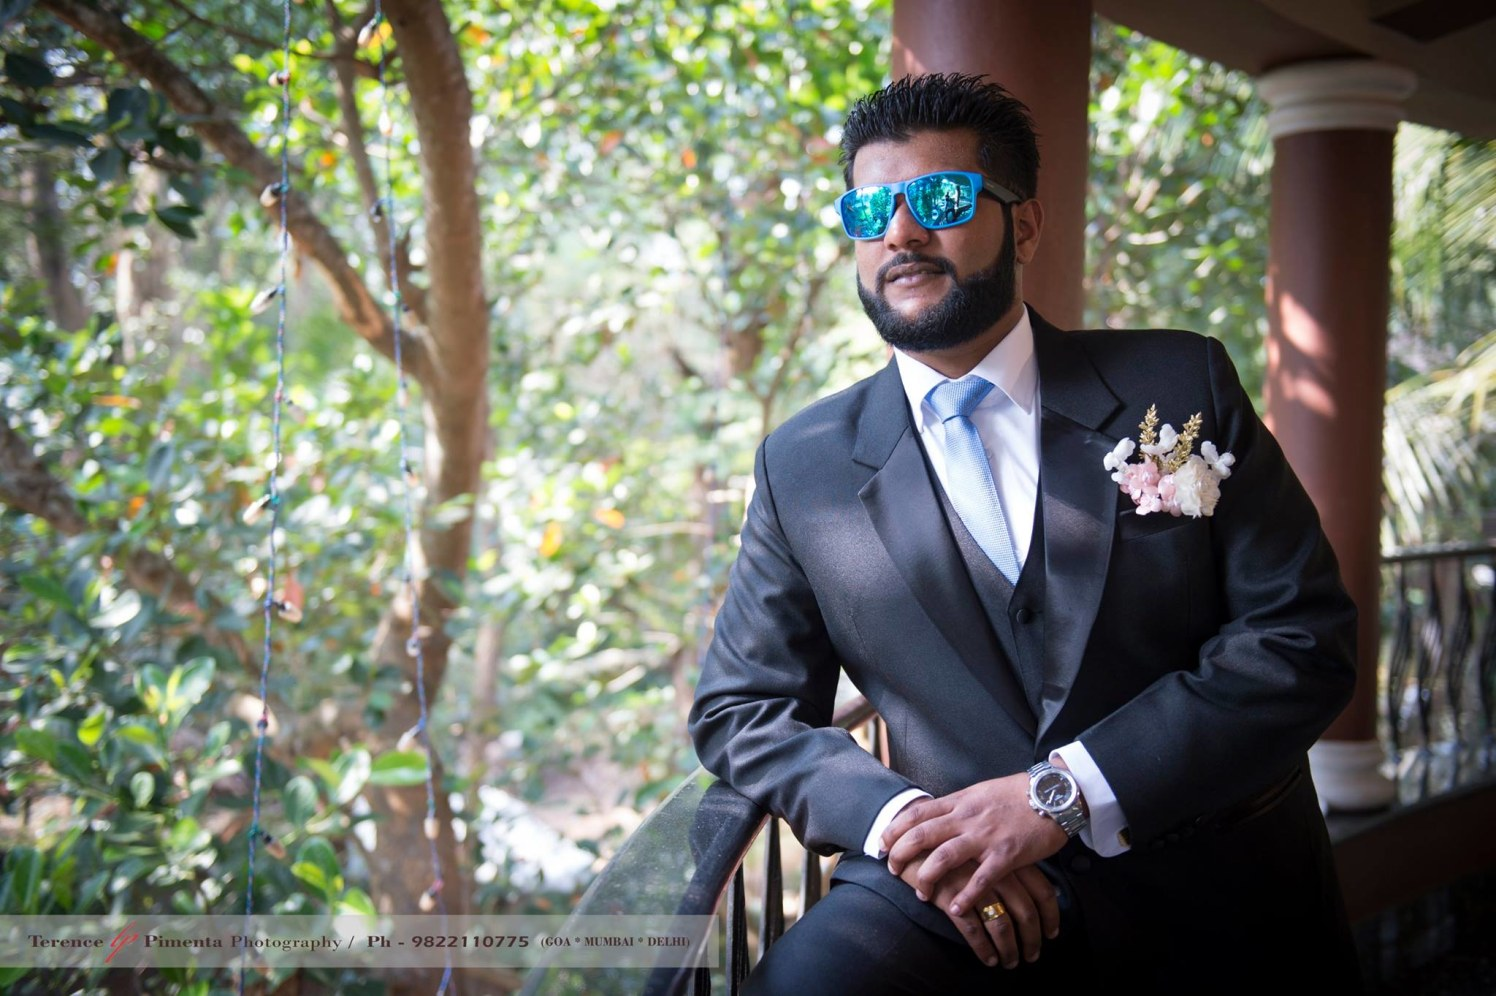 Mettlesome Man Suited Well In Black Three Piece Suit  With Blue Tie by Terence Savio Pimenta Wedding-photography | Weddings Photos & Ideas